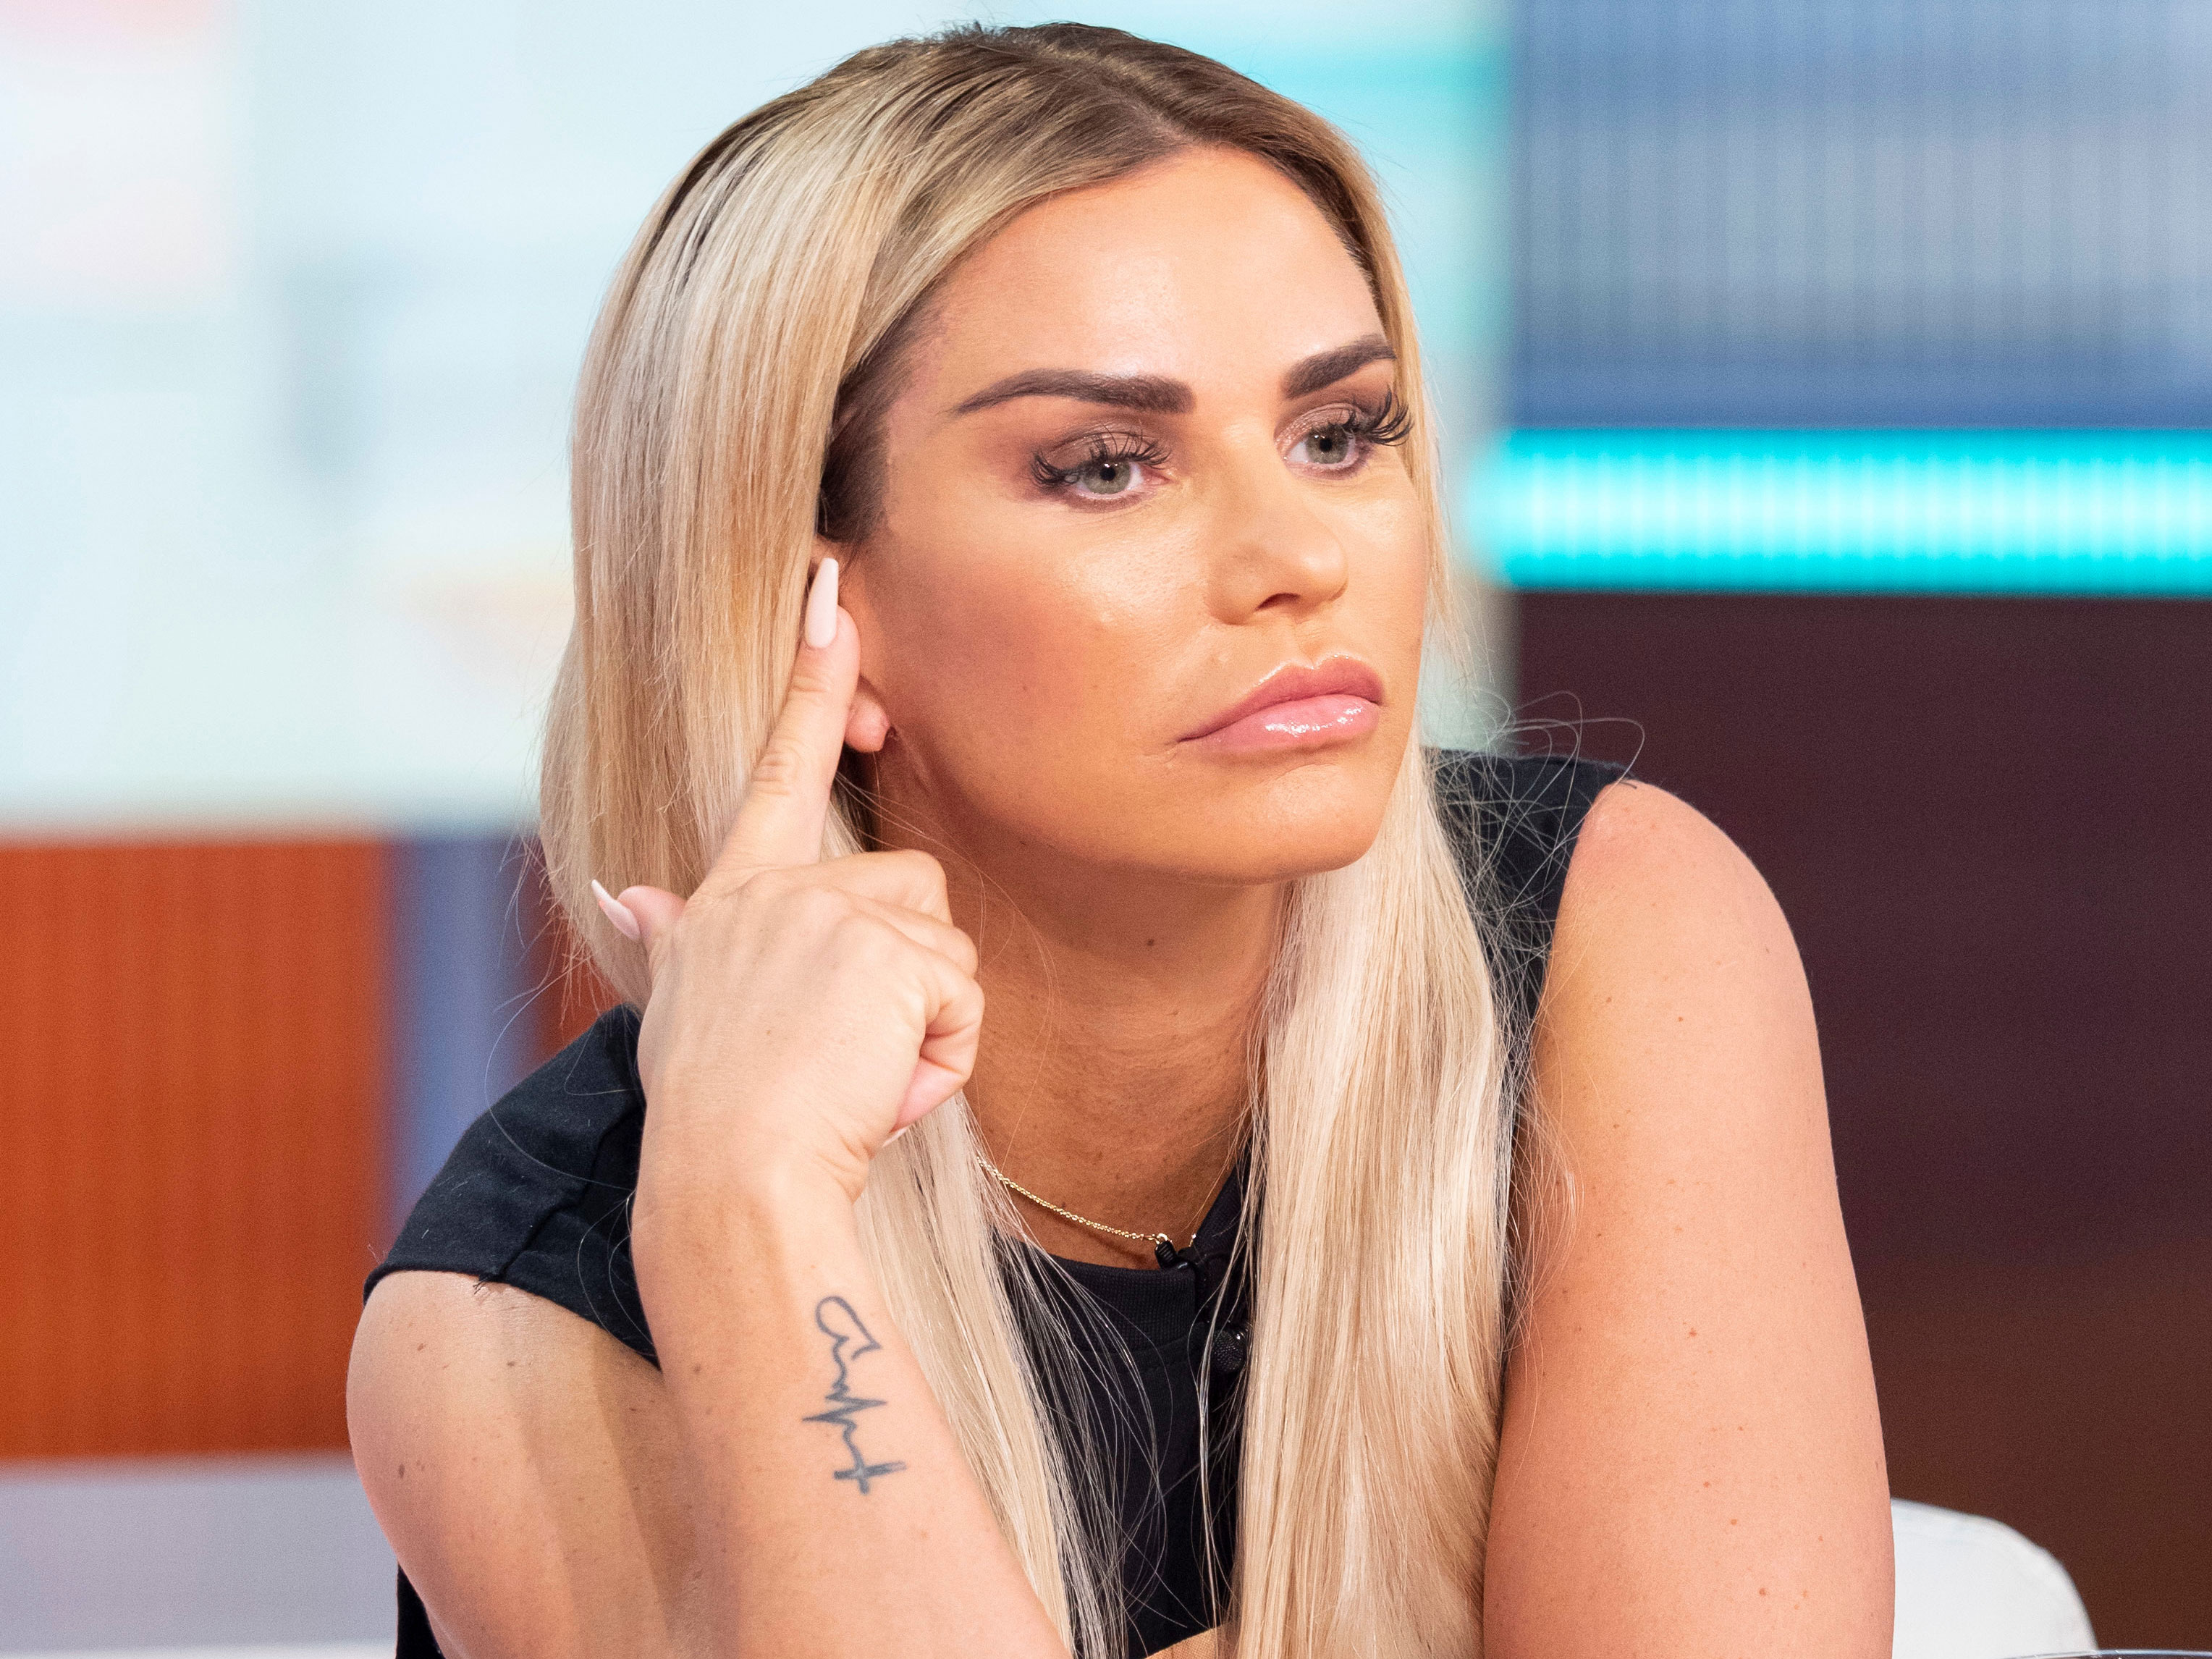 Katie Price reveals she had her own fat injected into her face